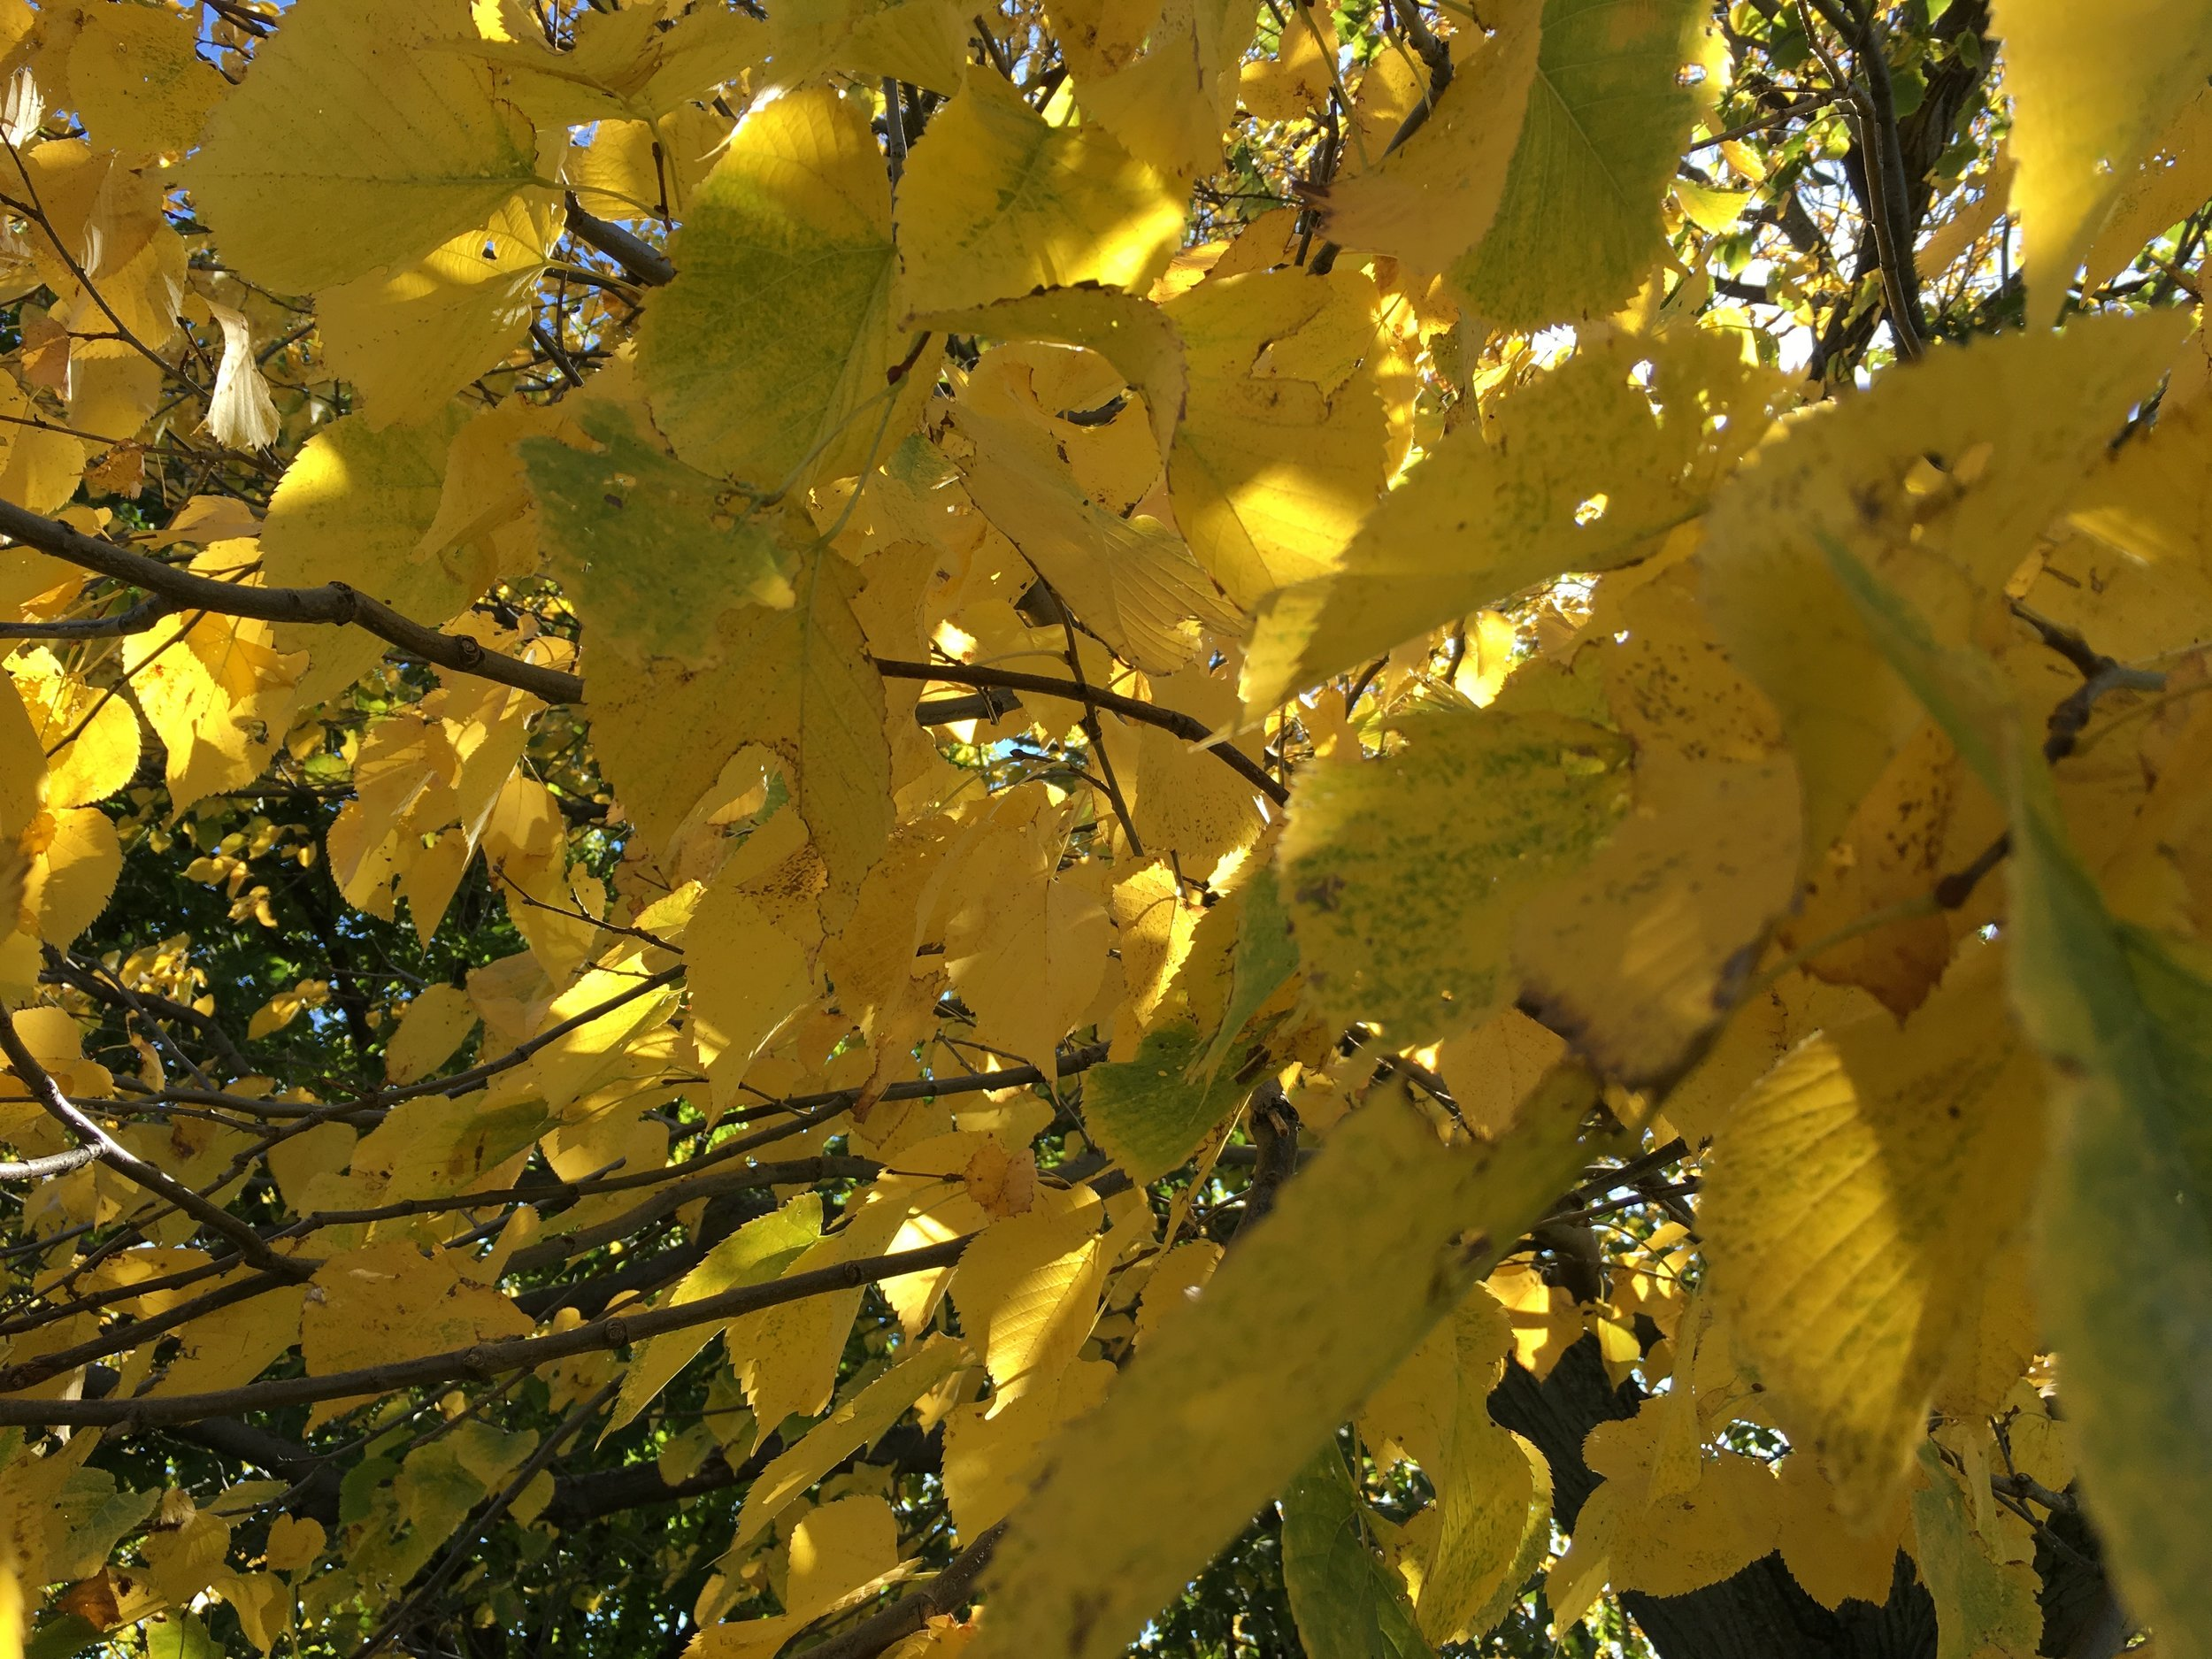 They call me Mellow Yellow...just kidding, I'm as anxious as they come, but aren't these leaves pretty?!